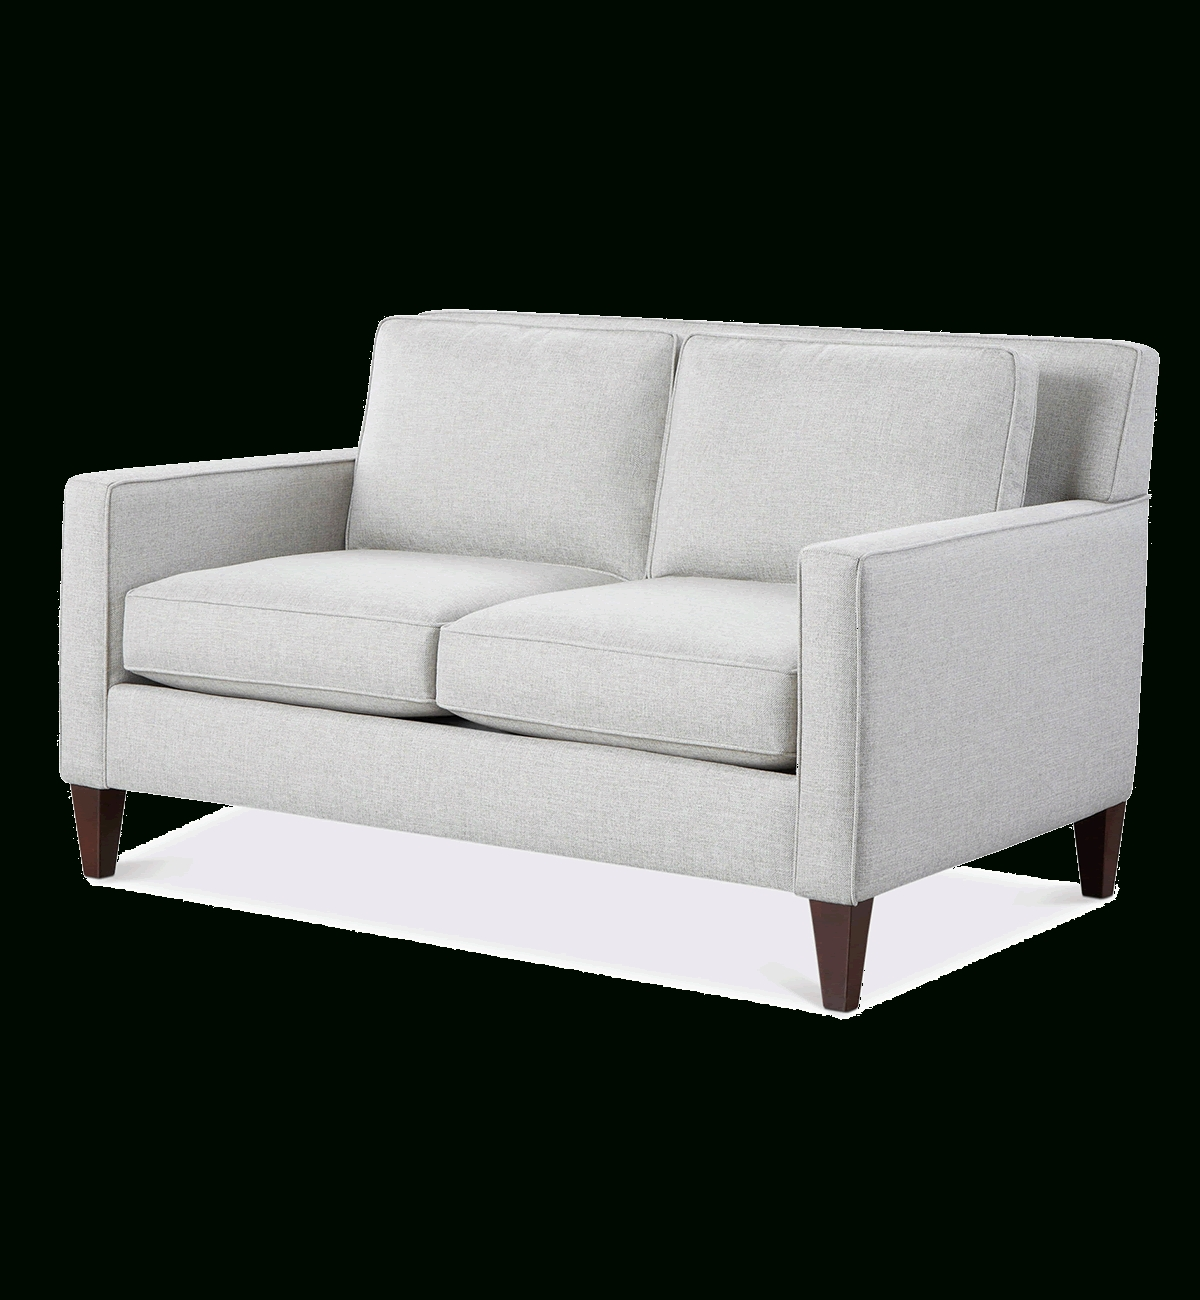 Couches And Sofas – Macy's With Regard To Most Recent Macys Sofas (View 9 of 20)